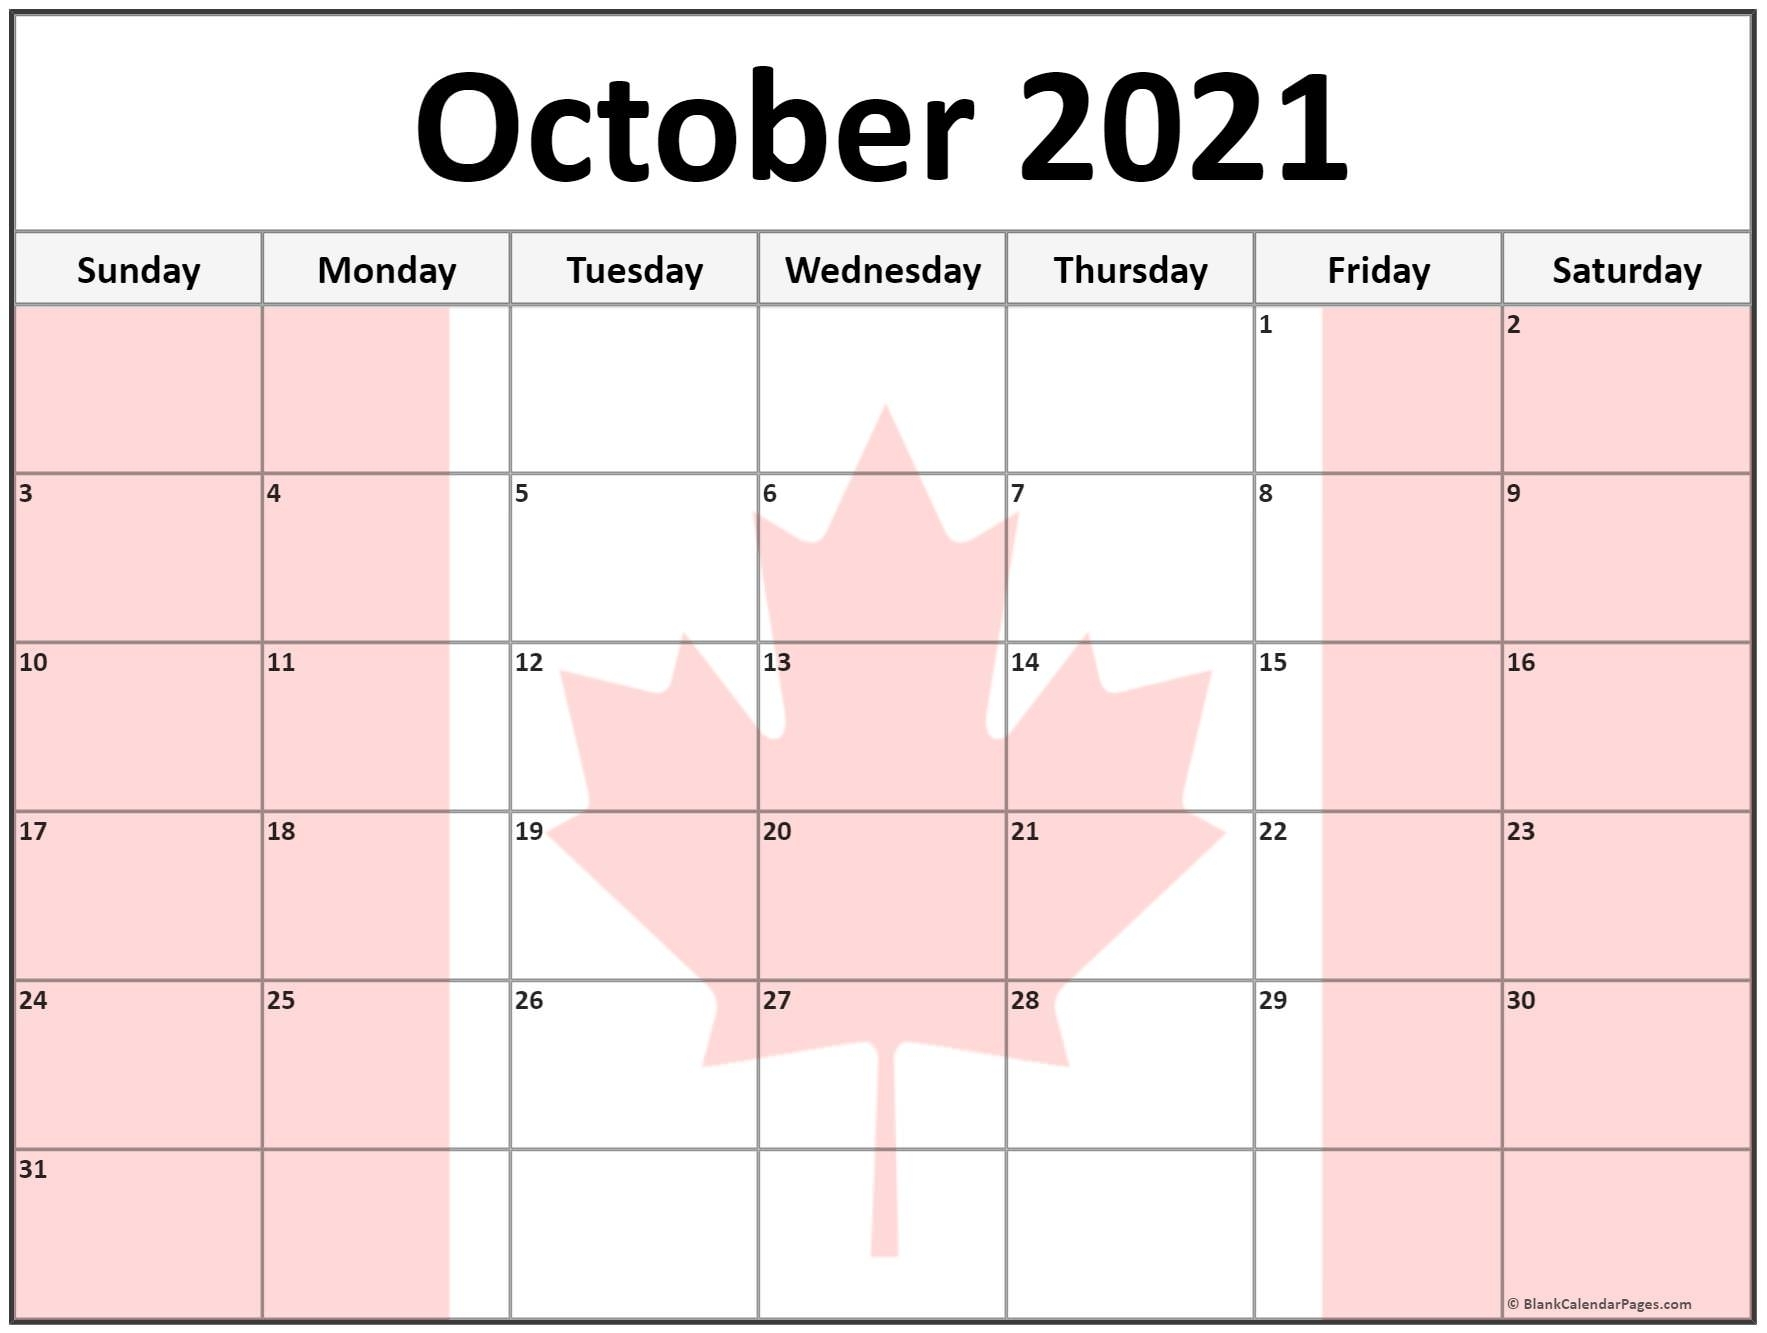 Collection Of October 2021 Photo Calendars With Image Filters.